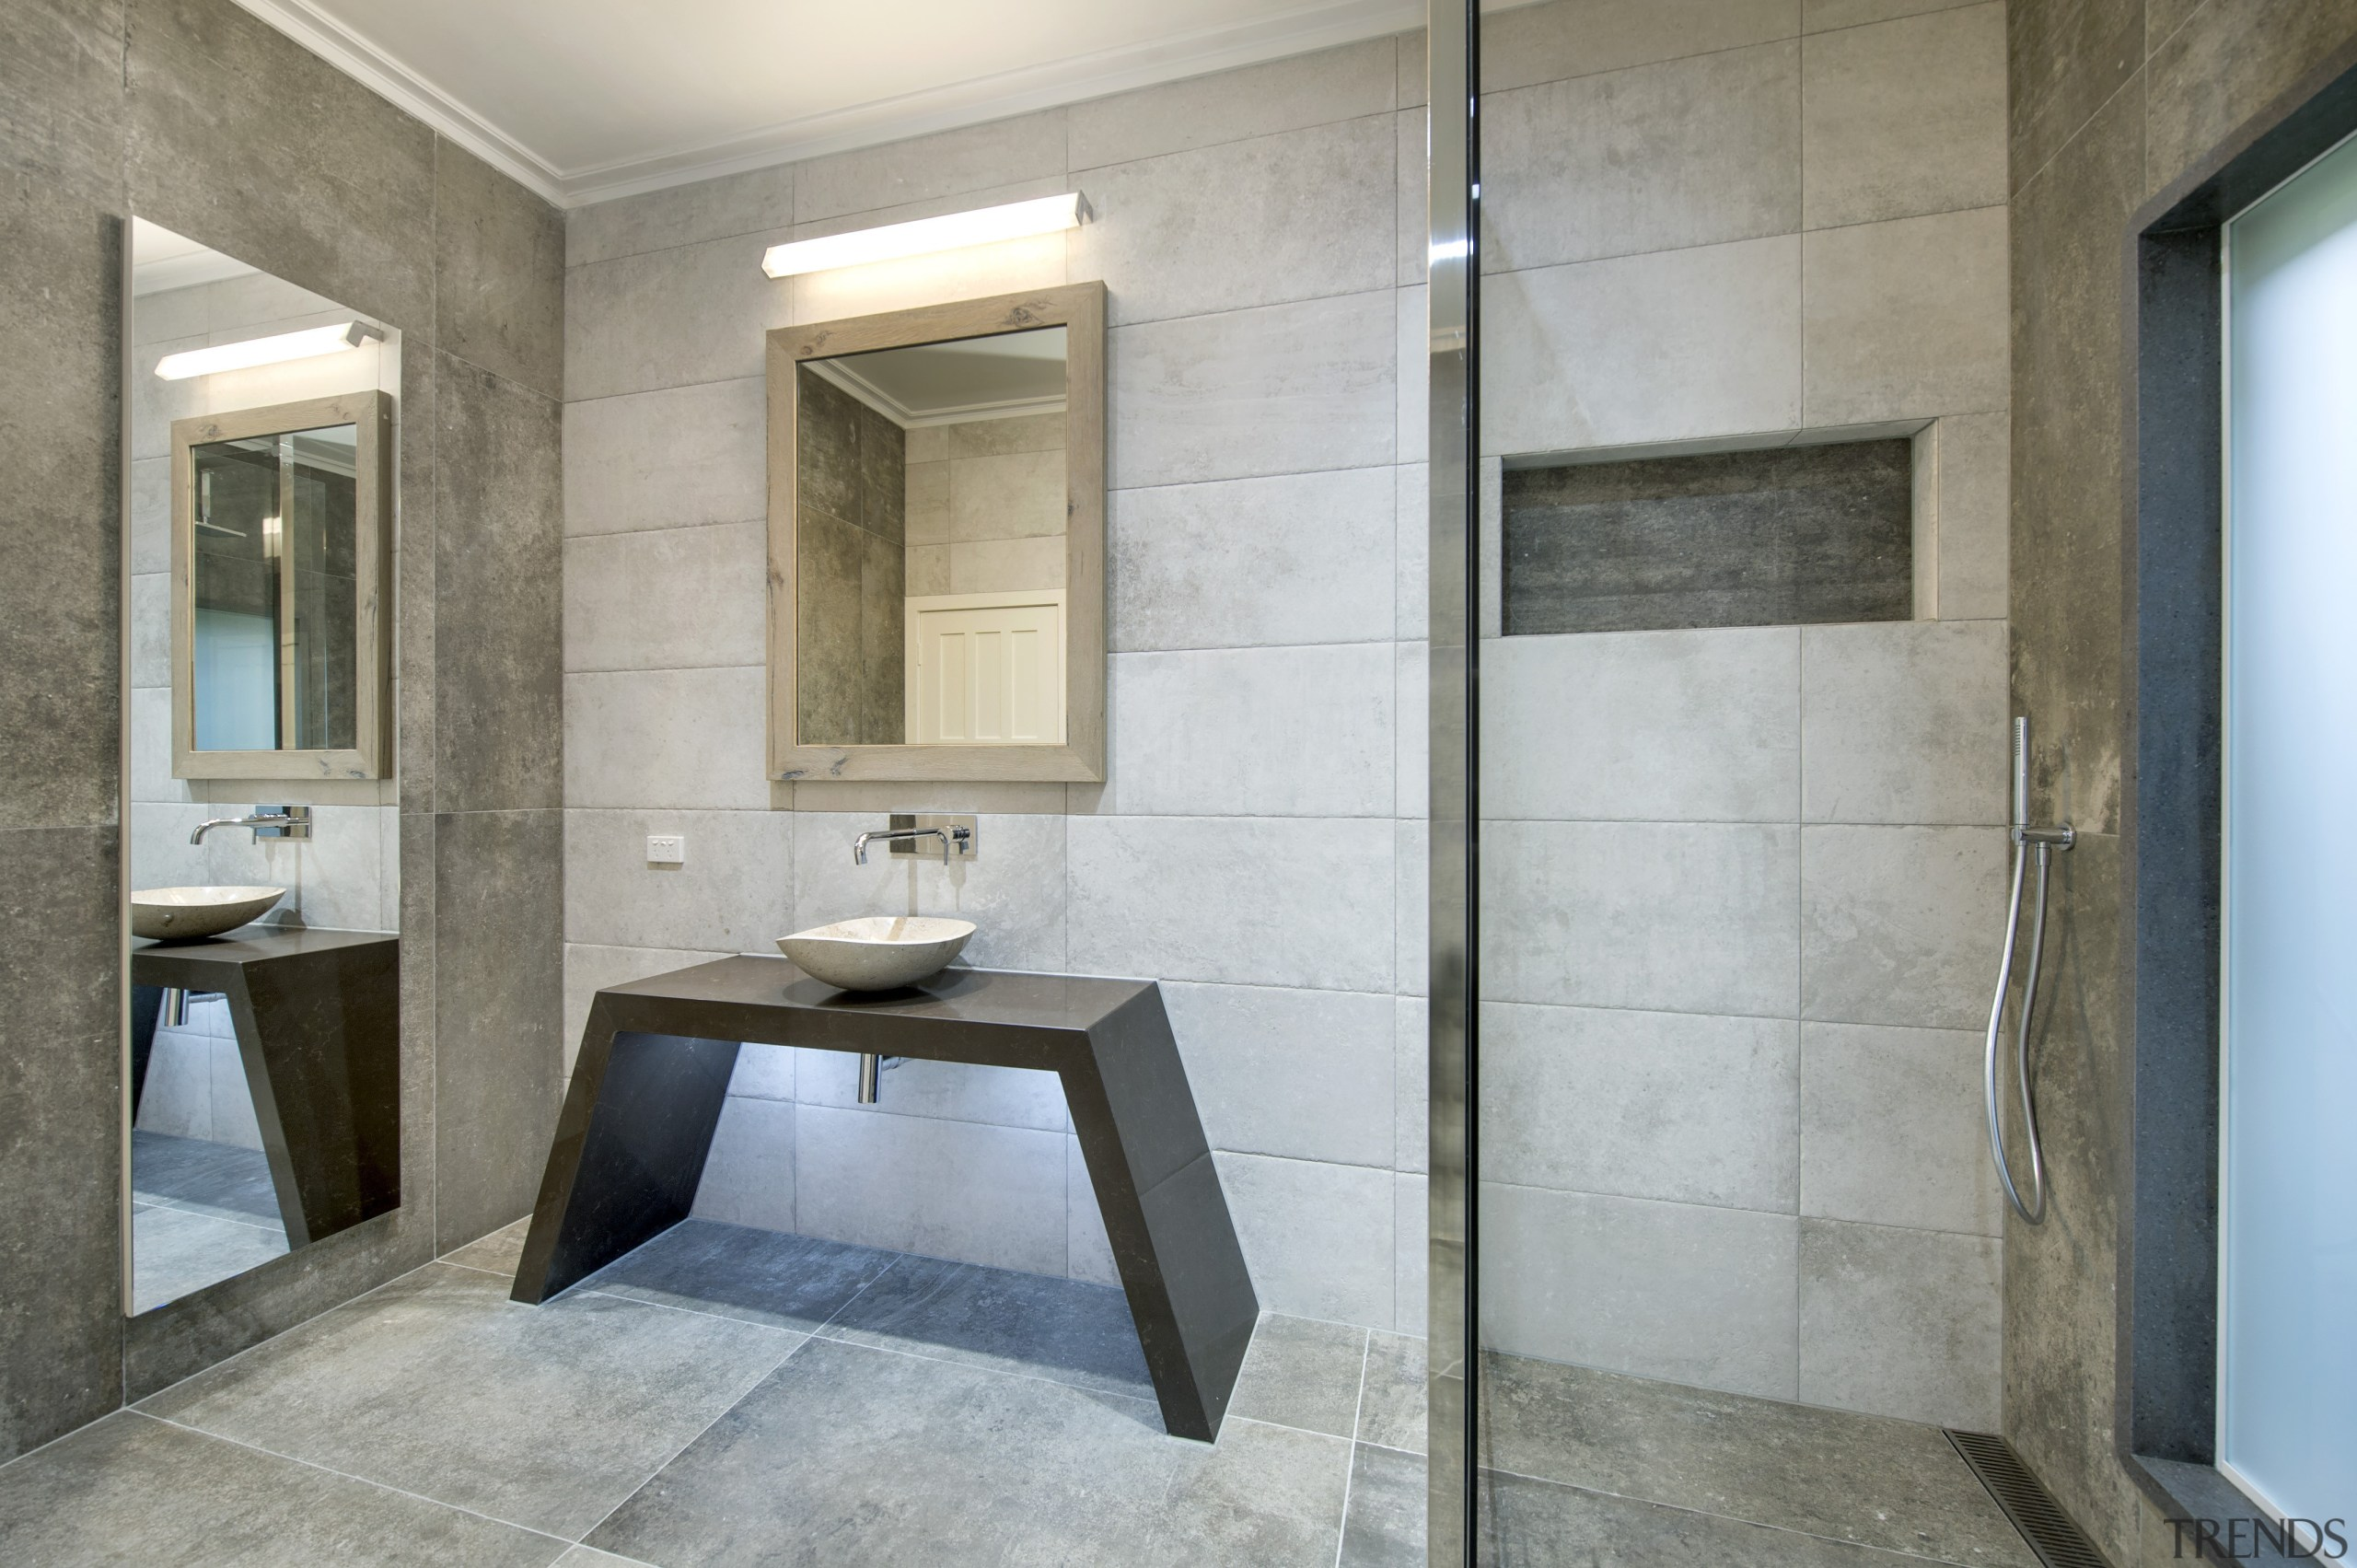 The mitred niche shelving in the shower is architecture, bathroom, floor, interior design, real estate, room, tile, gray